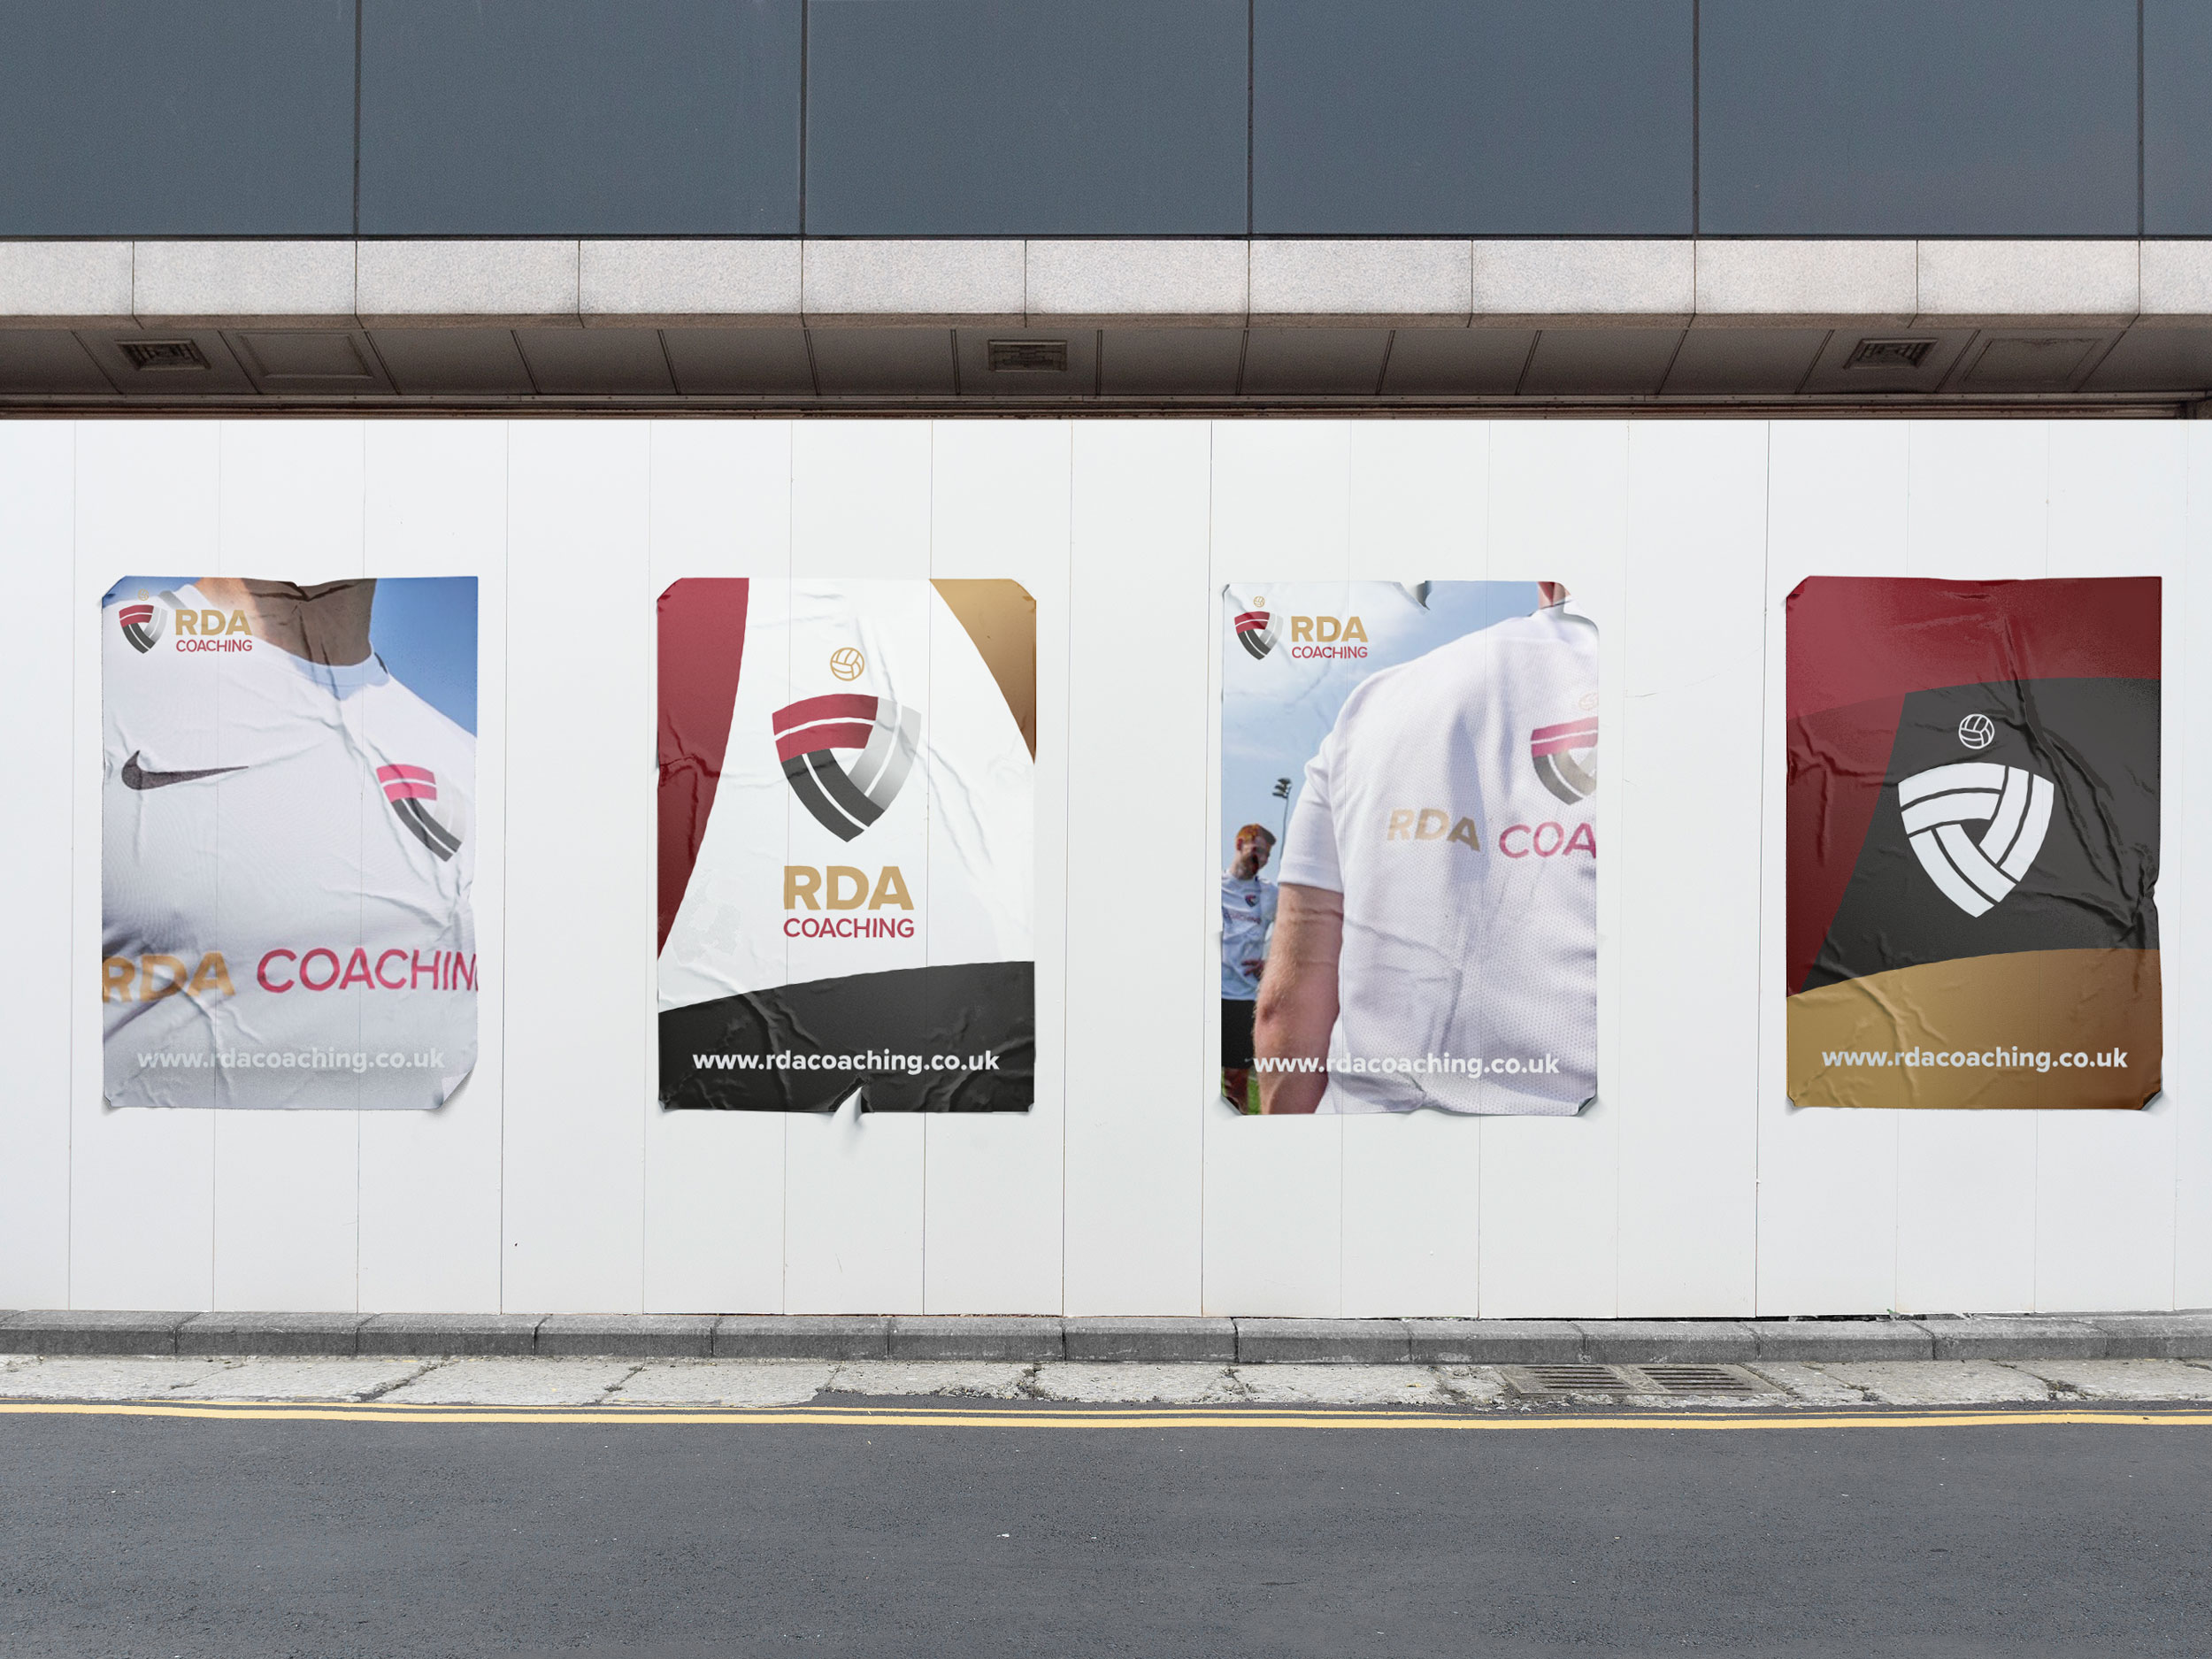 Promotional Materials for RDA on Wall